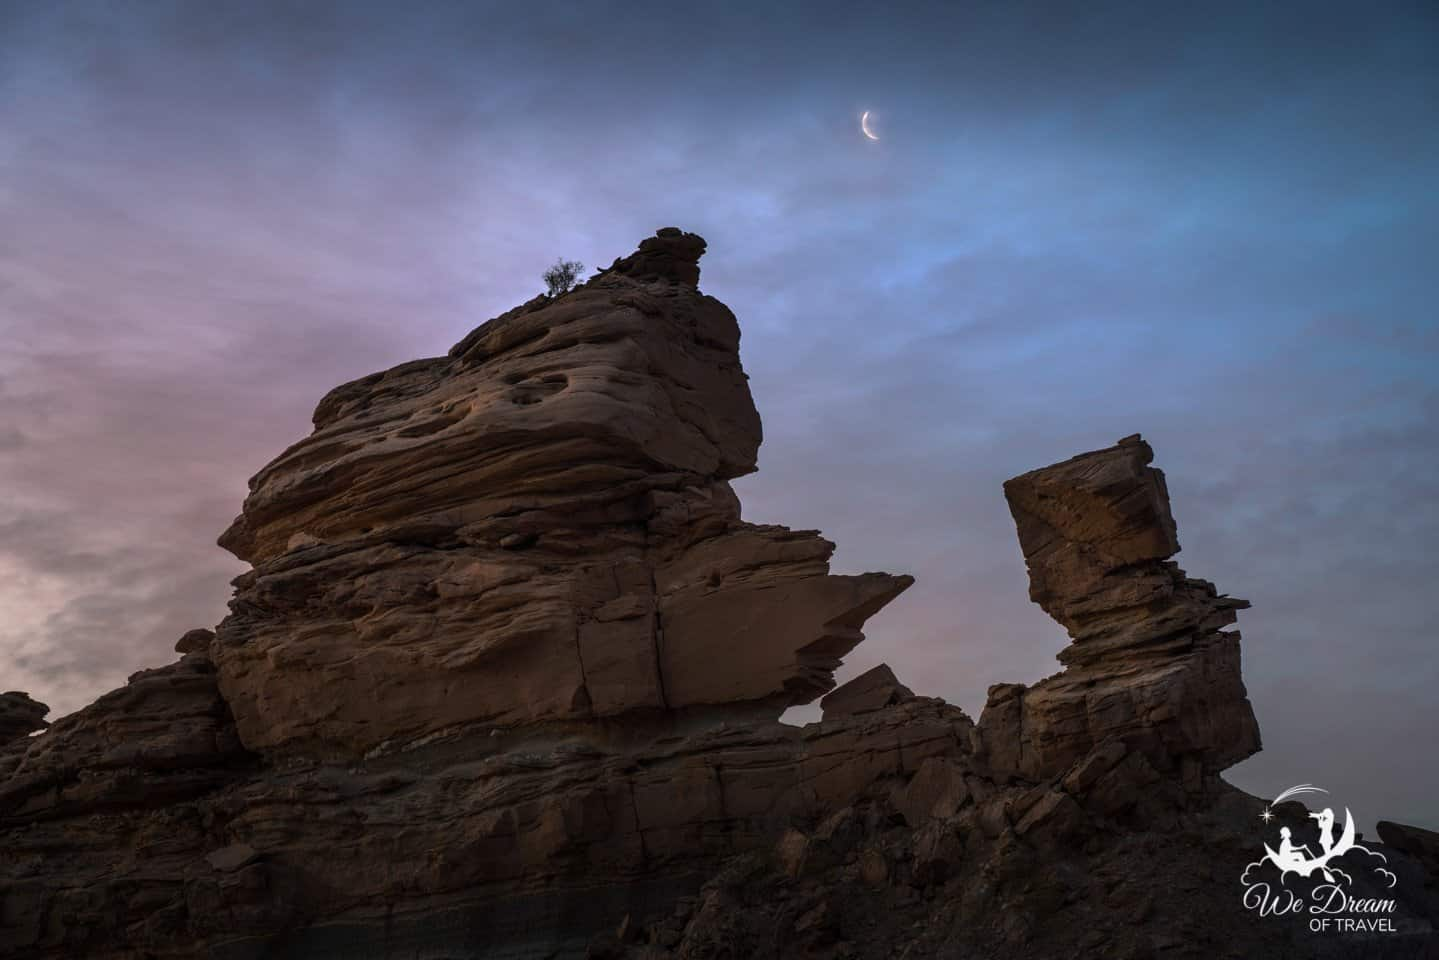 The opportunities for capturing epic Big Bend National Parks pictures are endless.